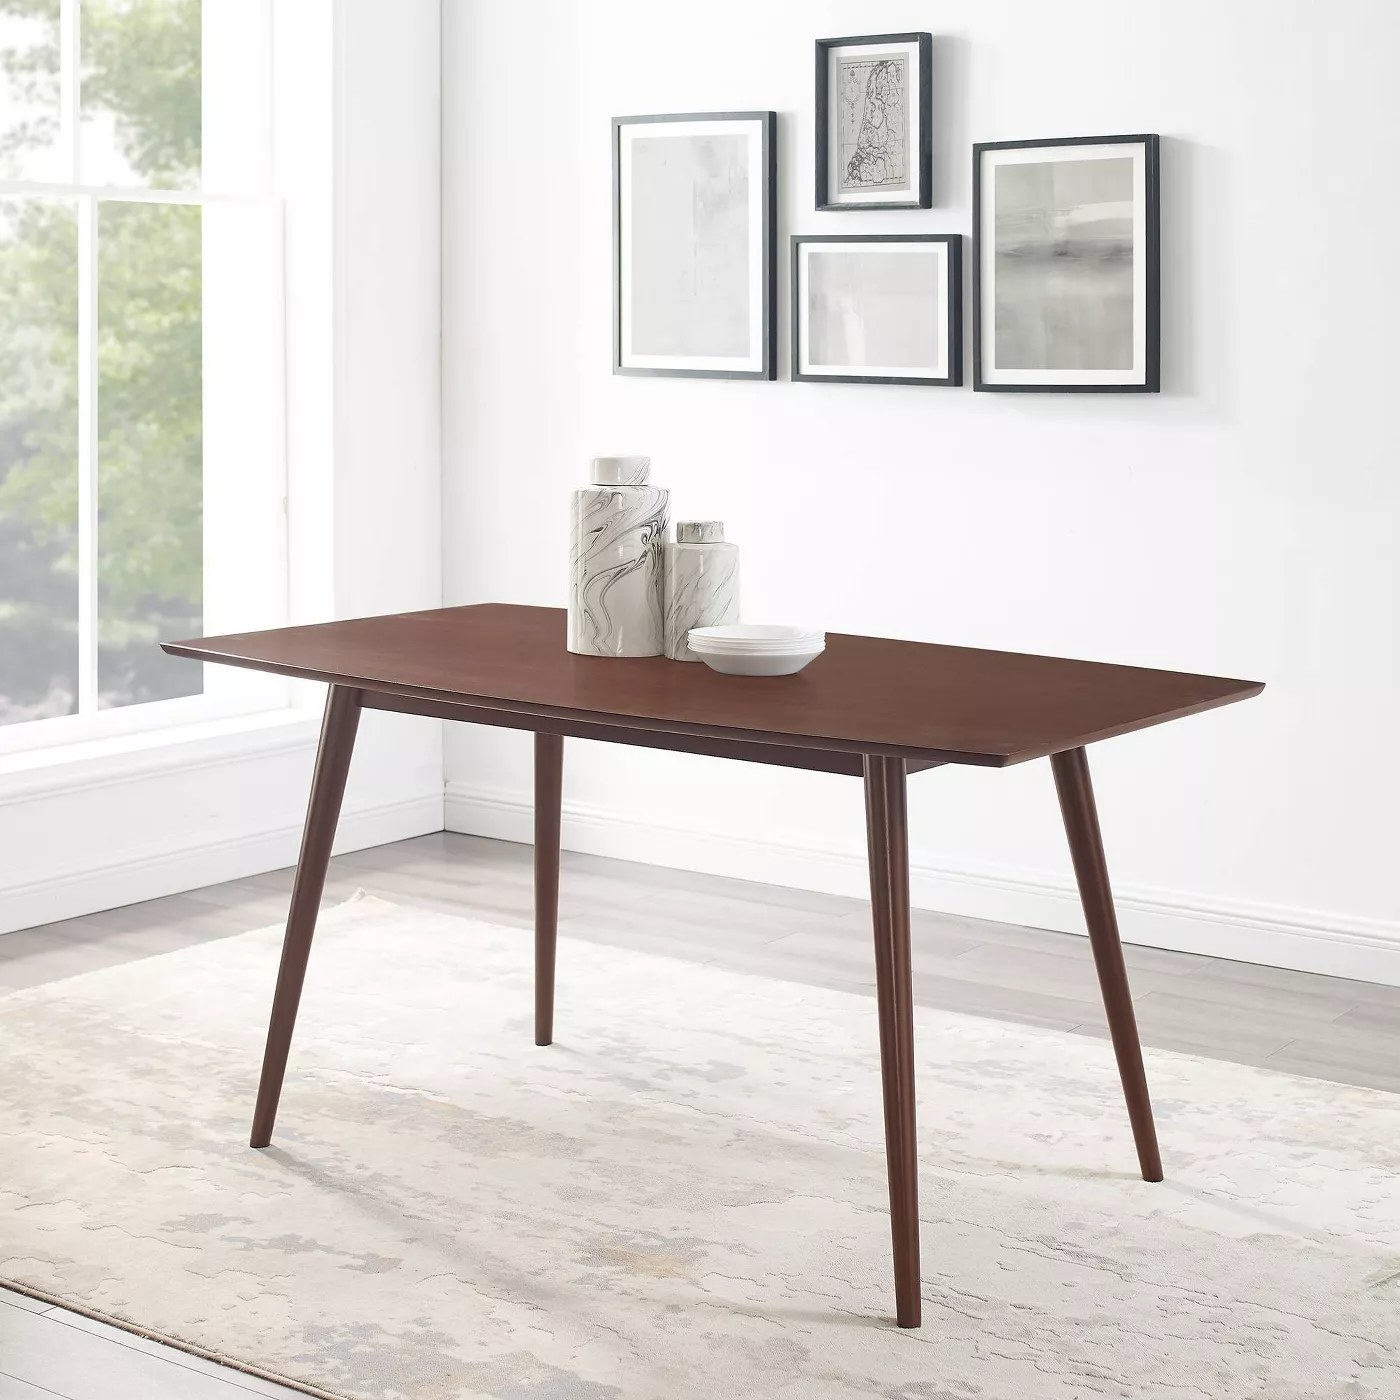 The table in walnut